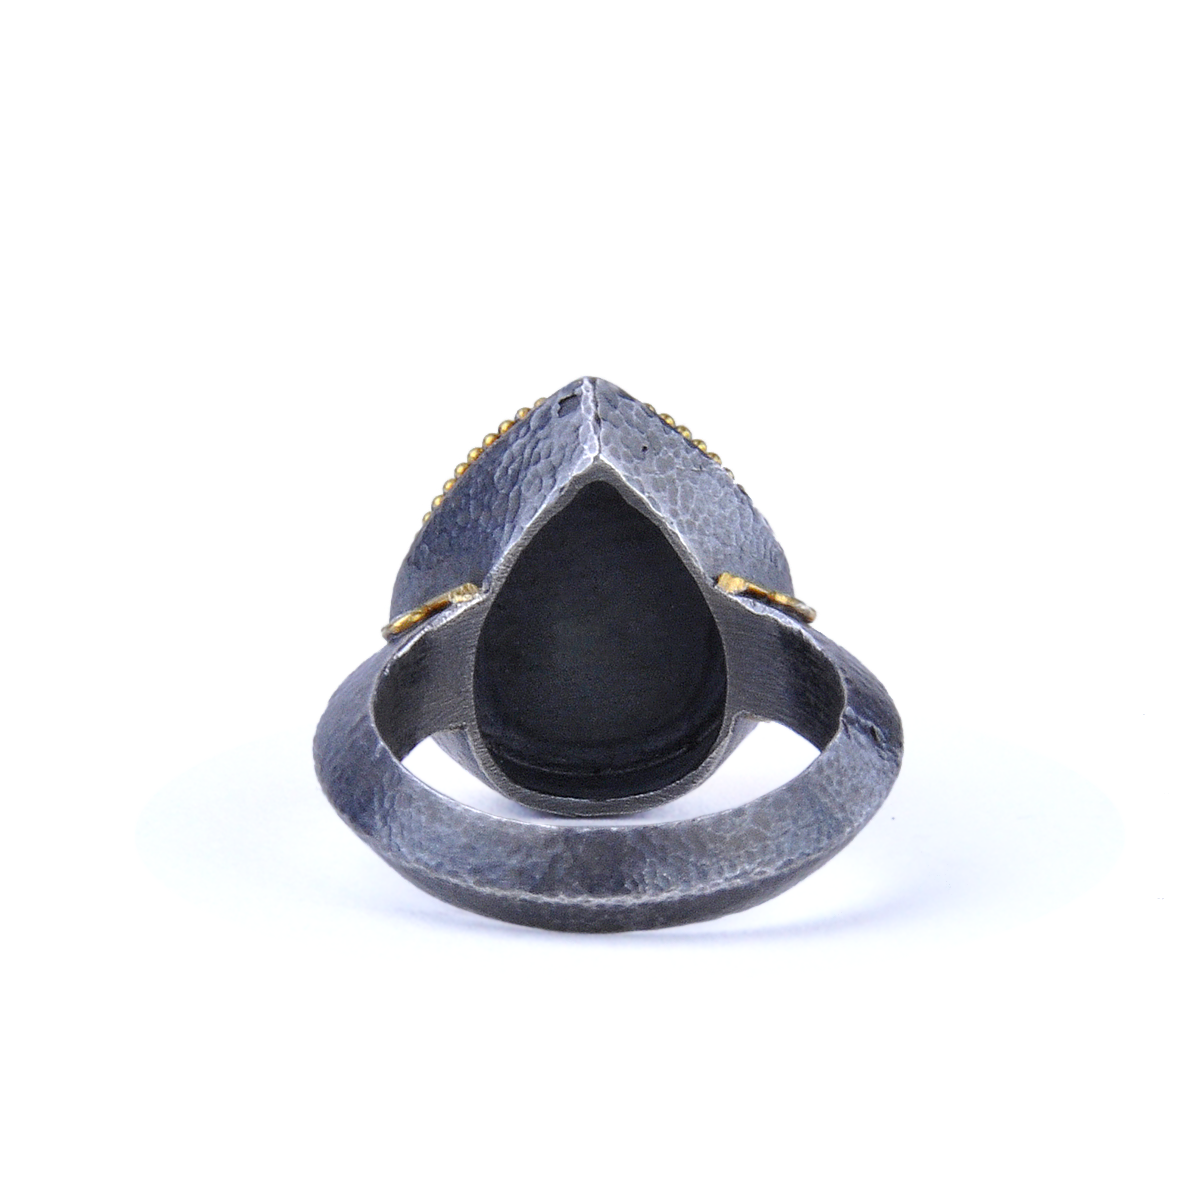 Kurtulan 24K Gold, Oxidized Silver, Diamonds, Rutilated Quartz - alternate